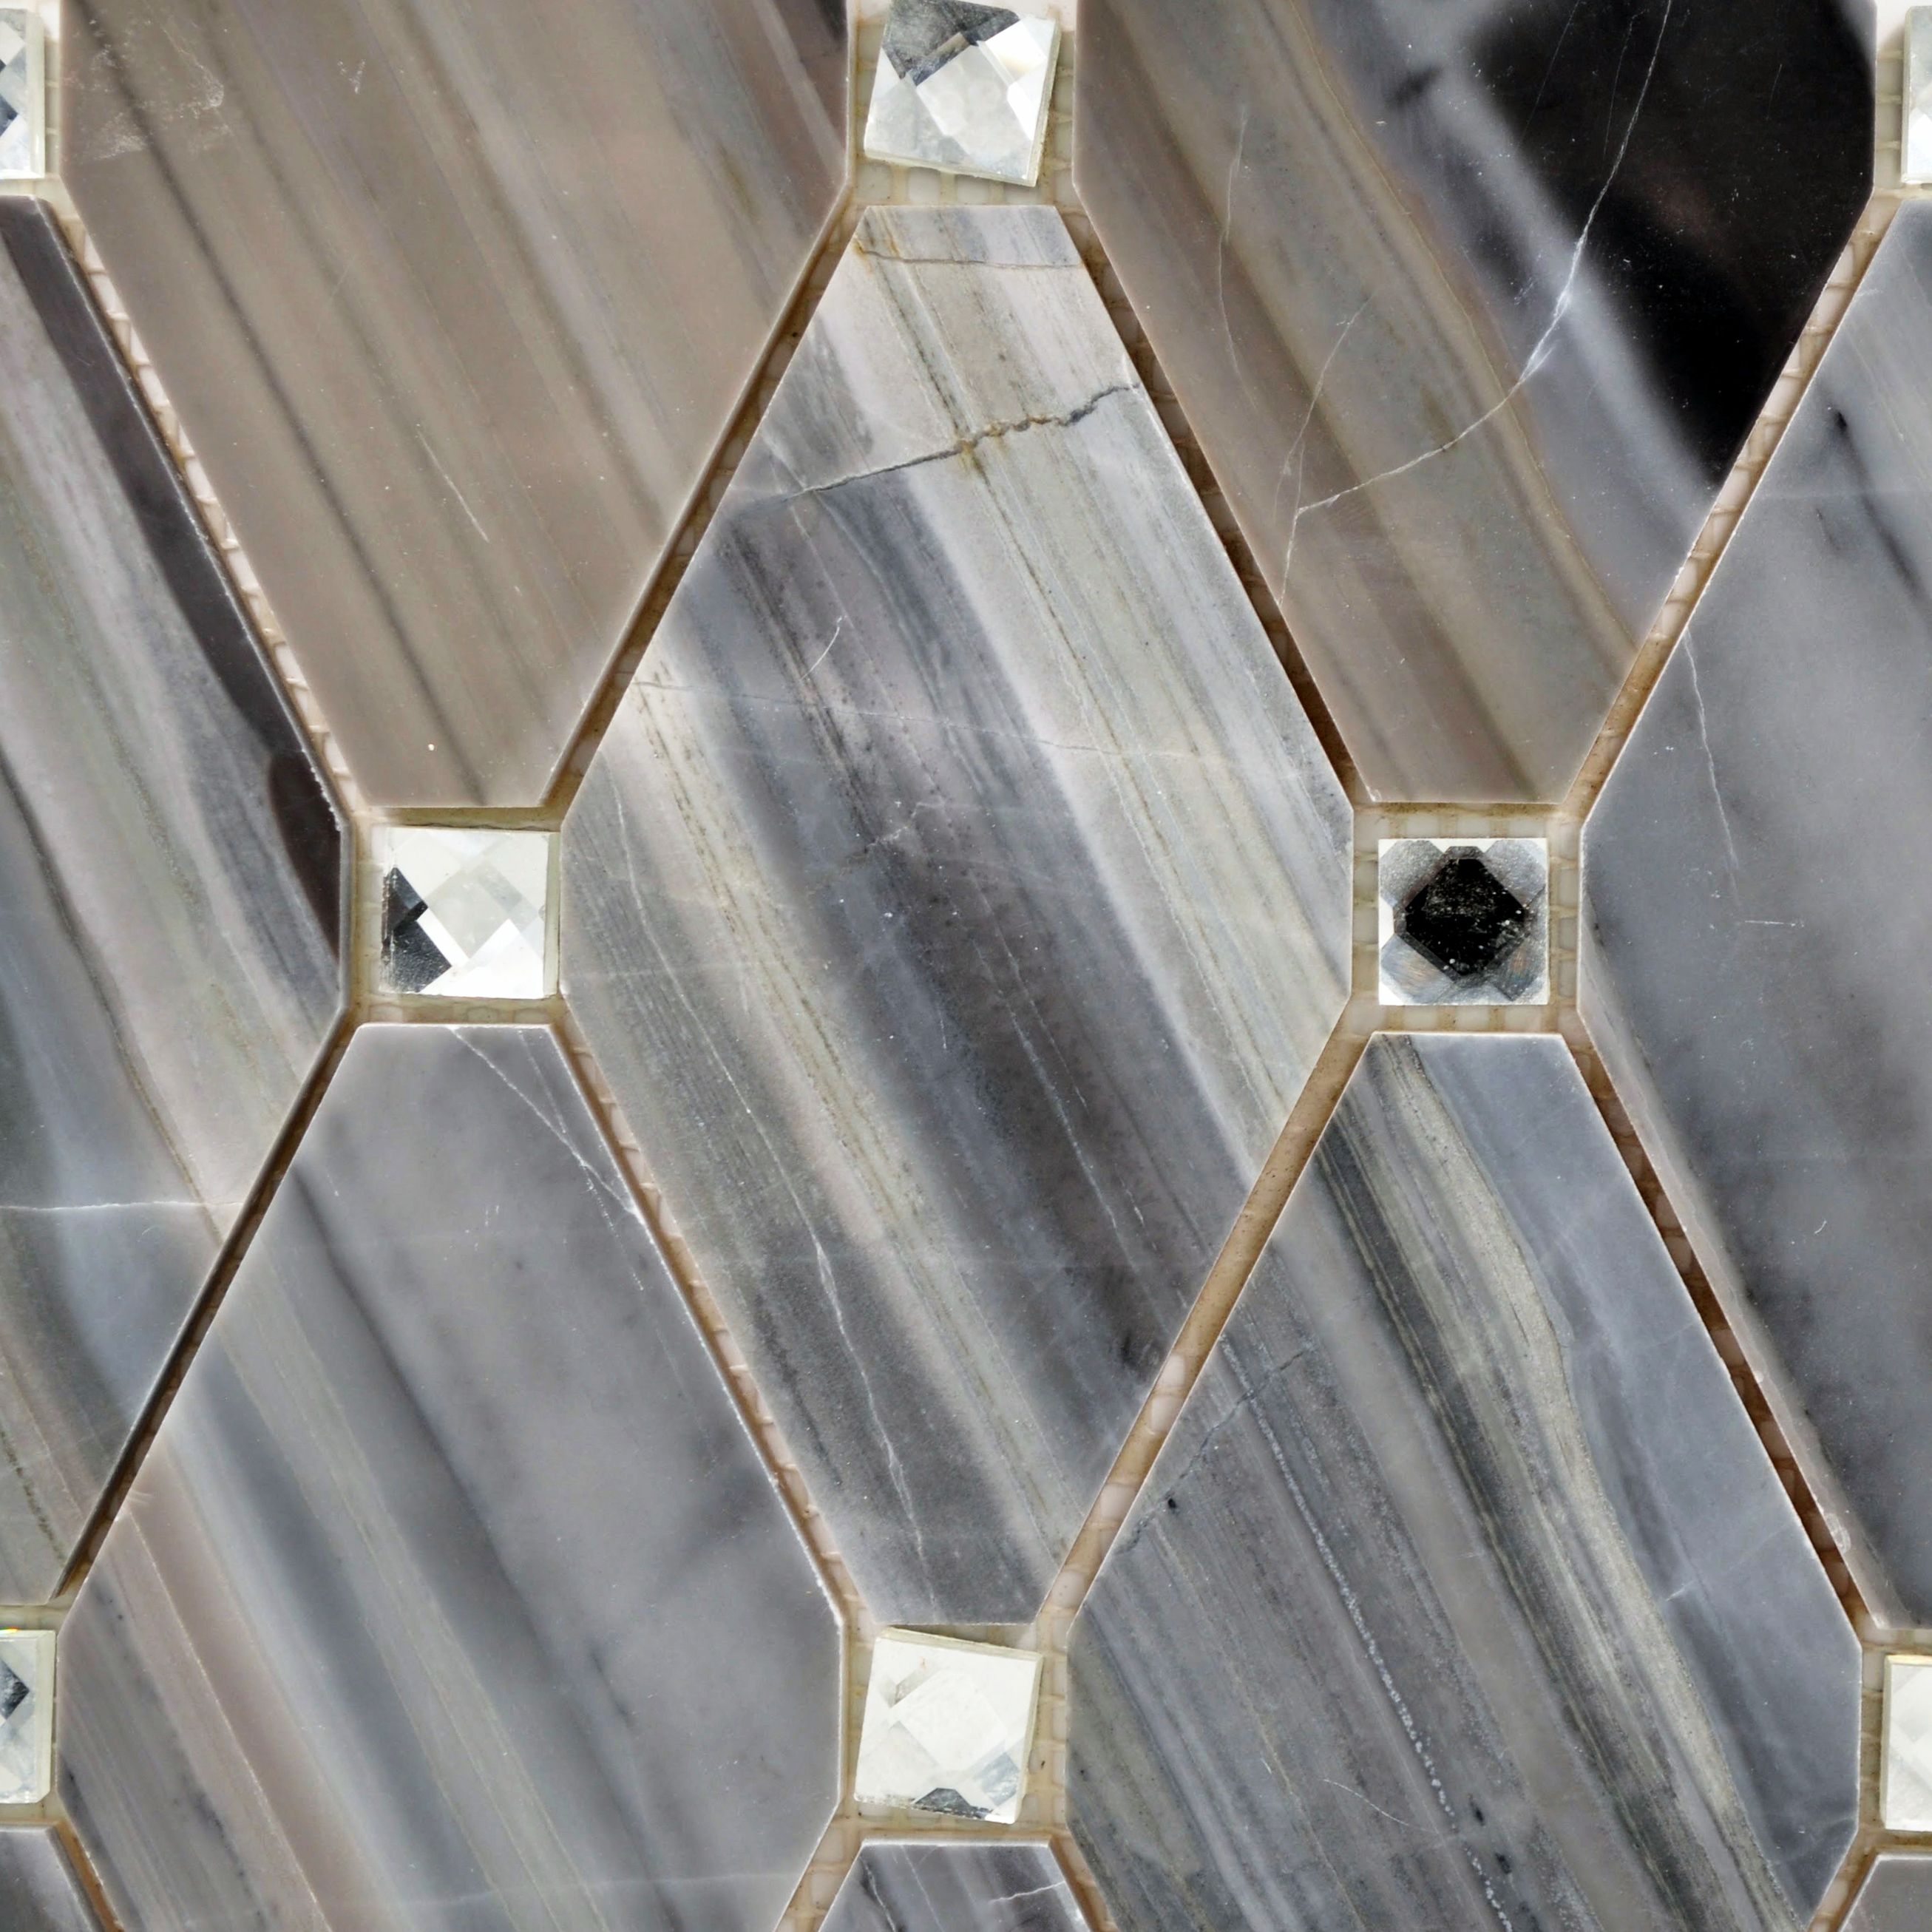 Bella casa tile collection wholesale tile supply and manufacture abigail stone glass ling blue diamond tyukafo